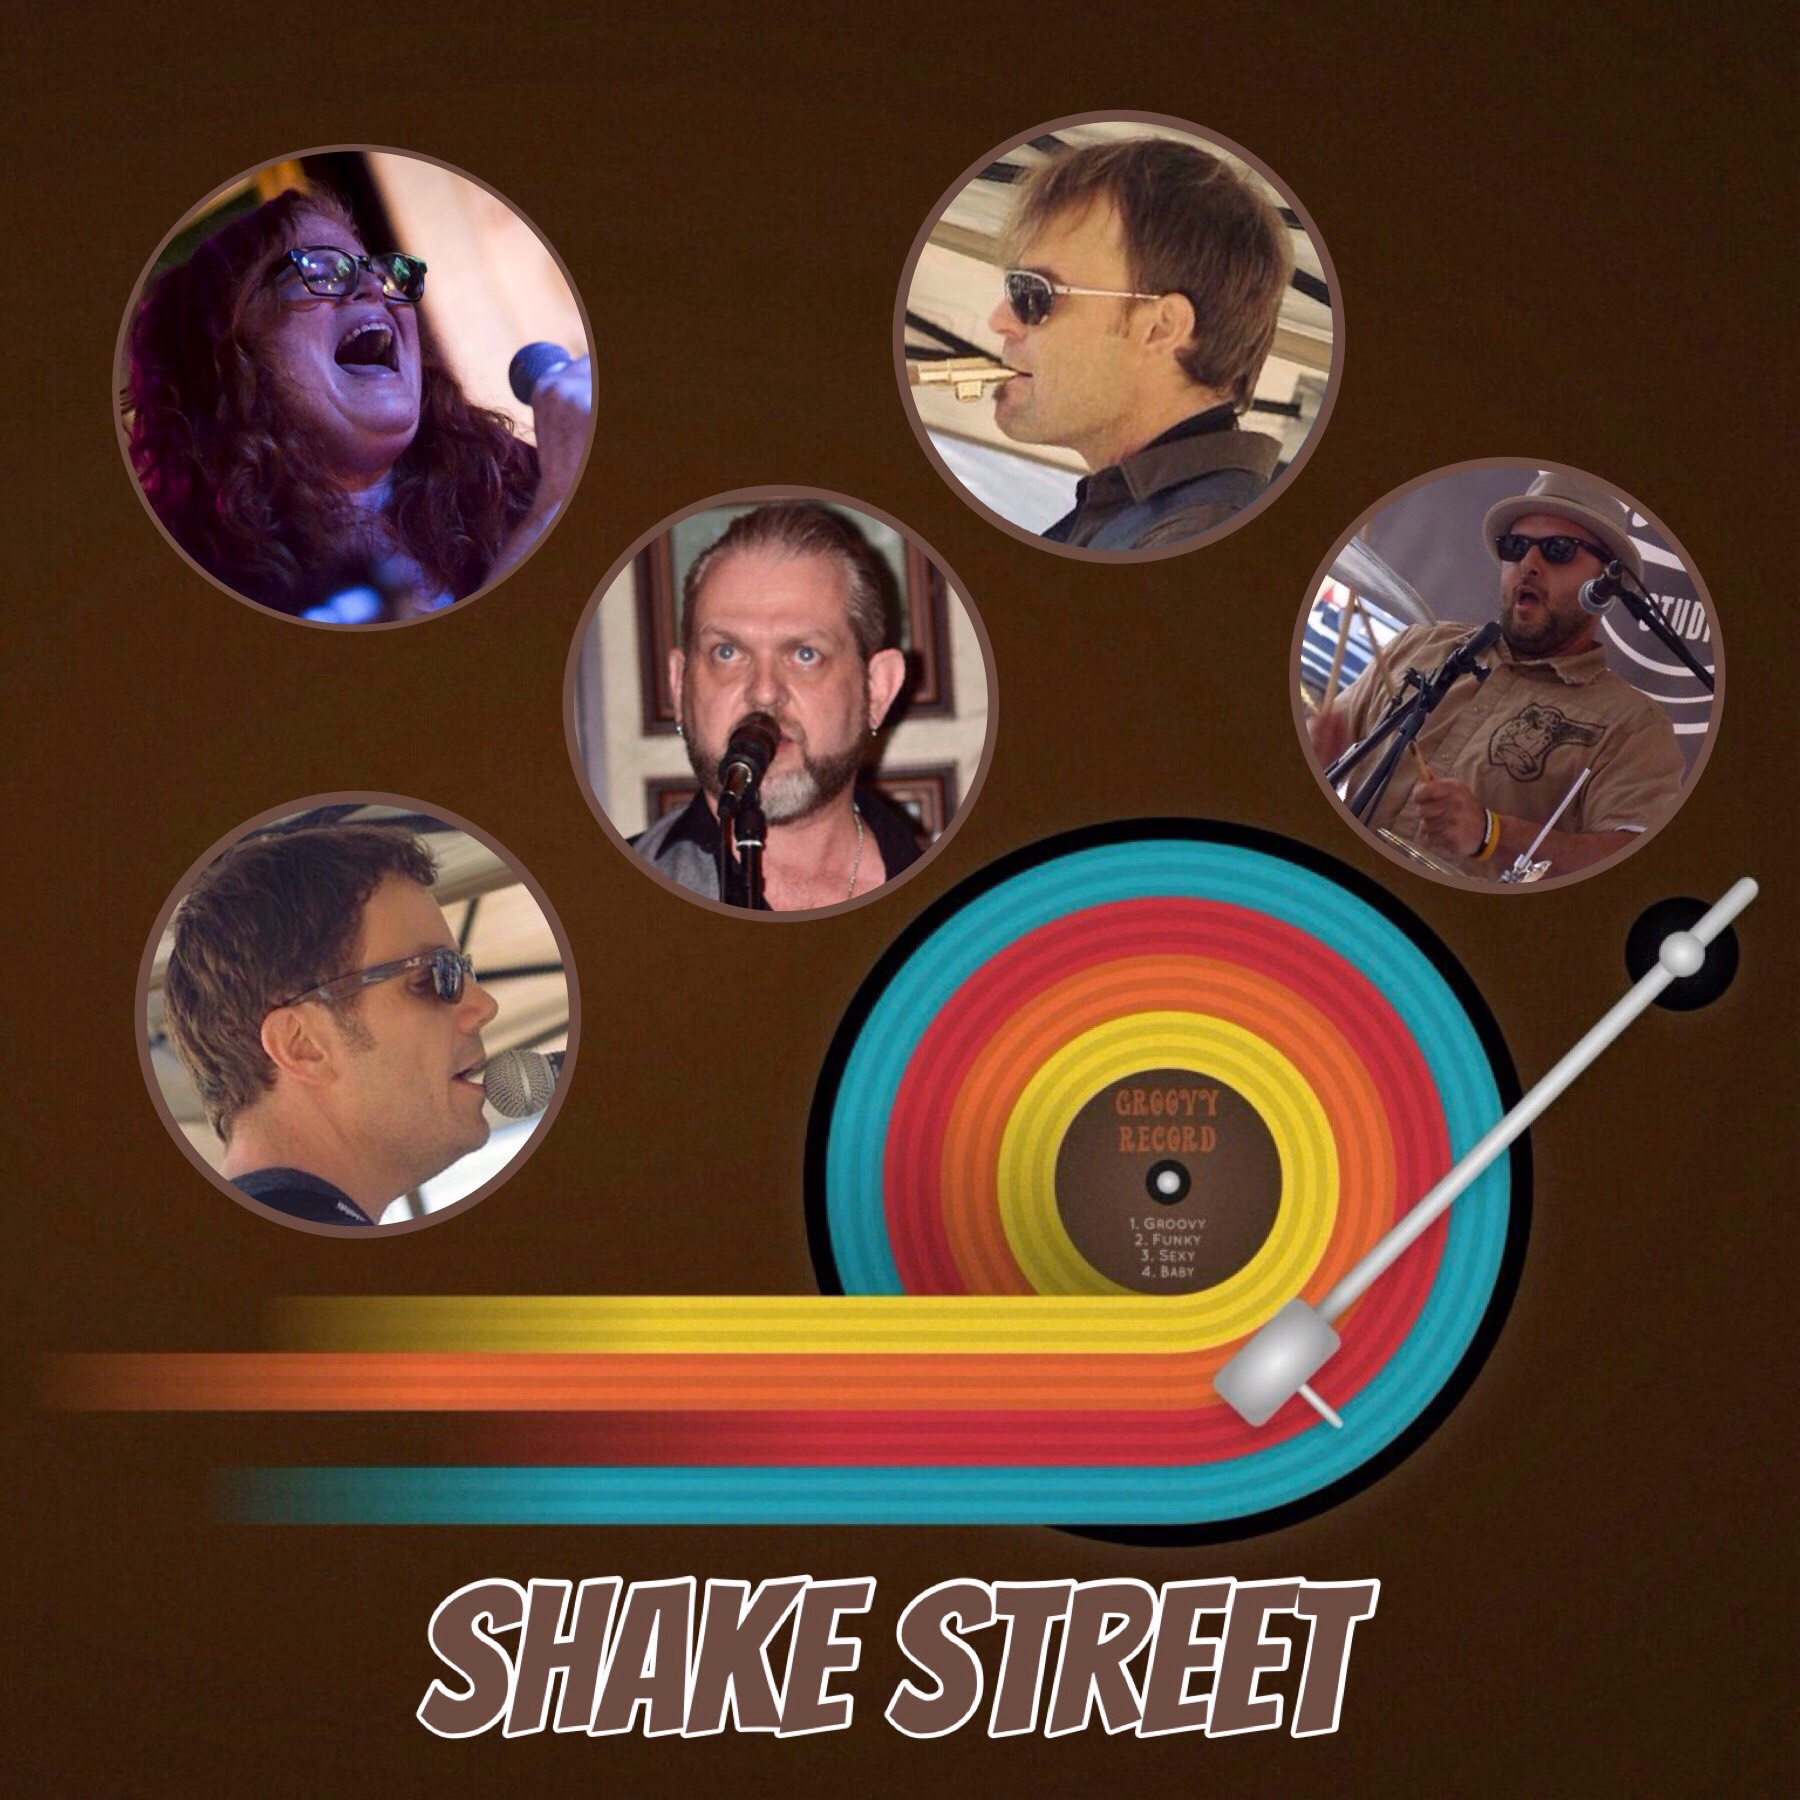 Cover photo for shakestreet band